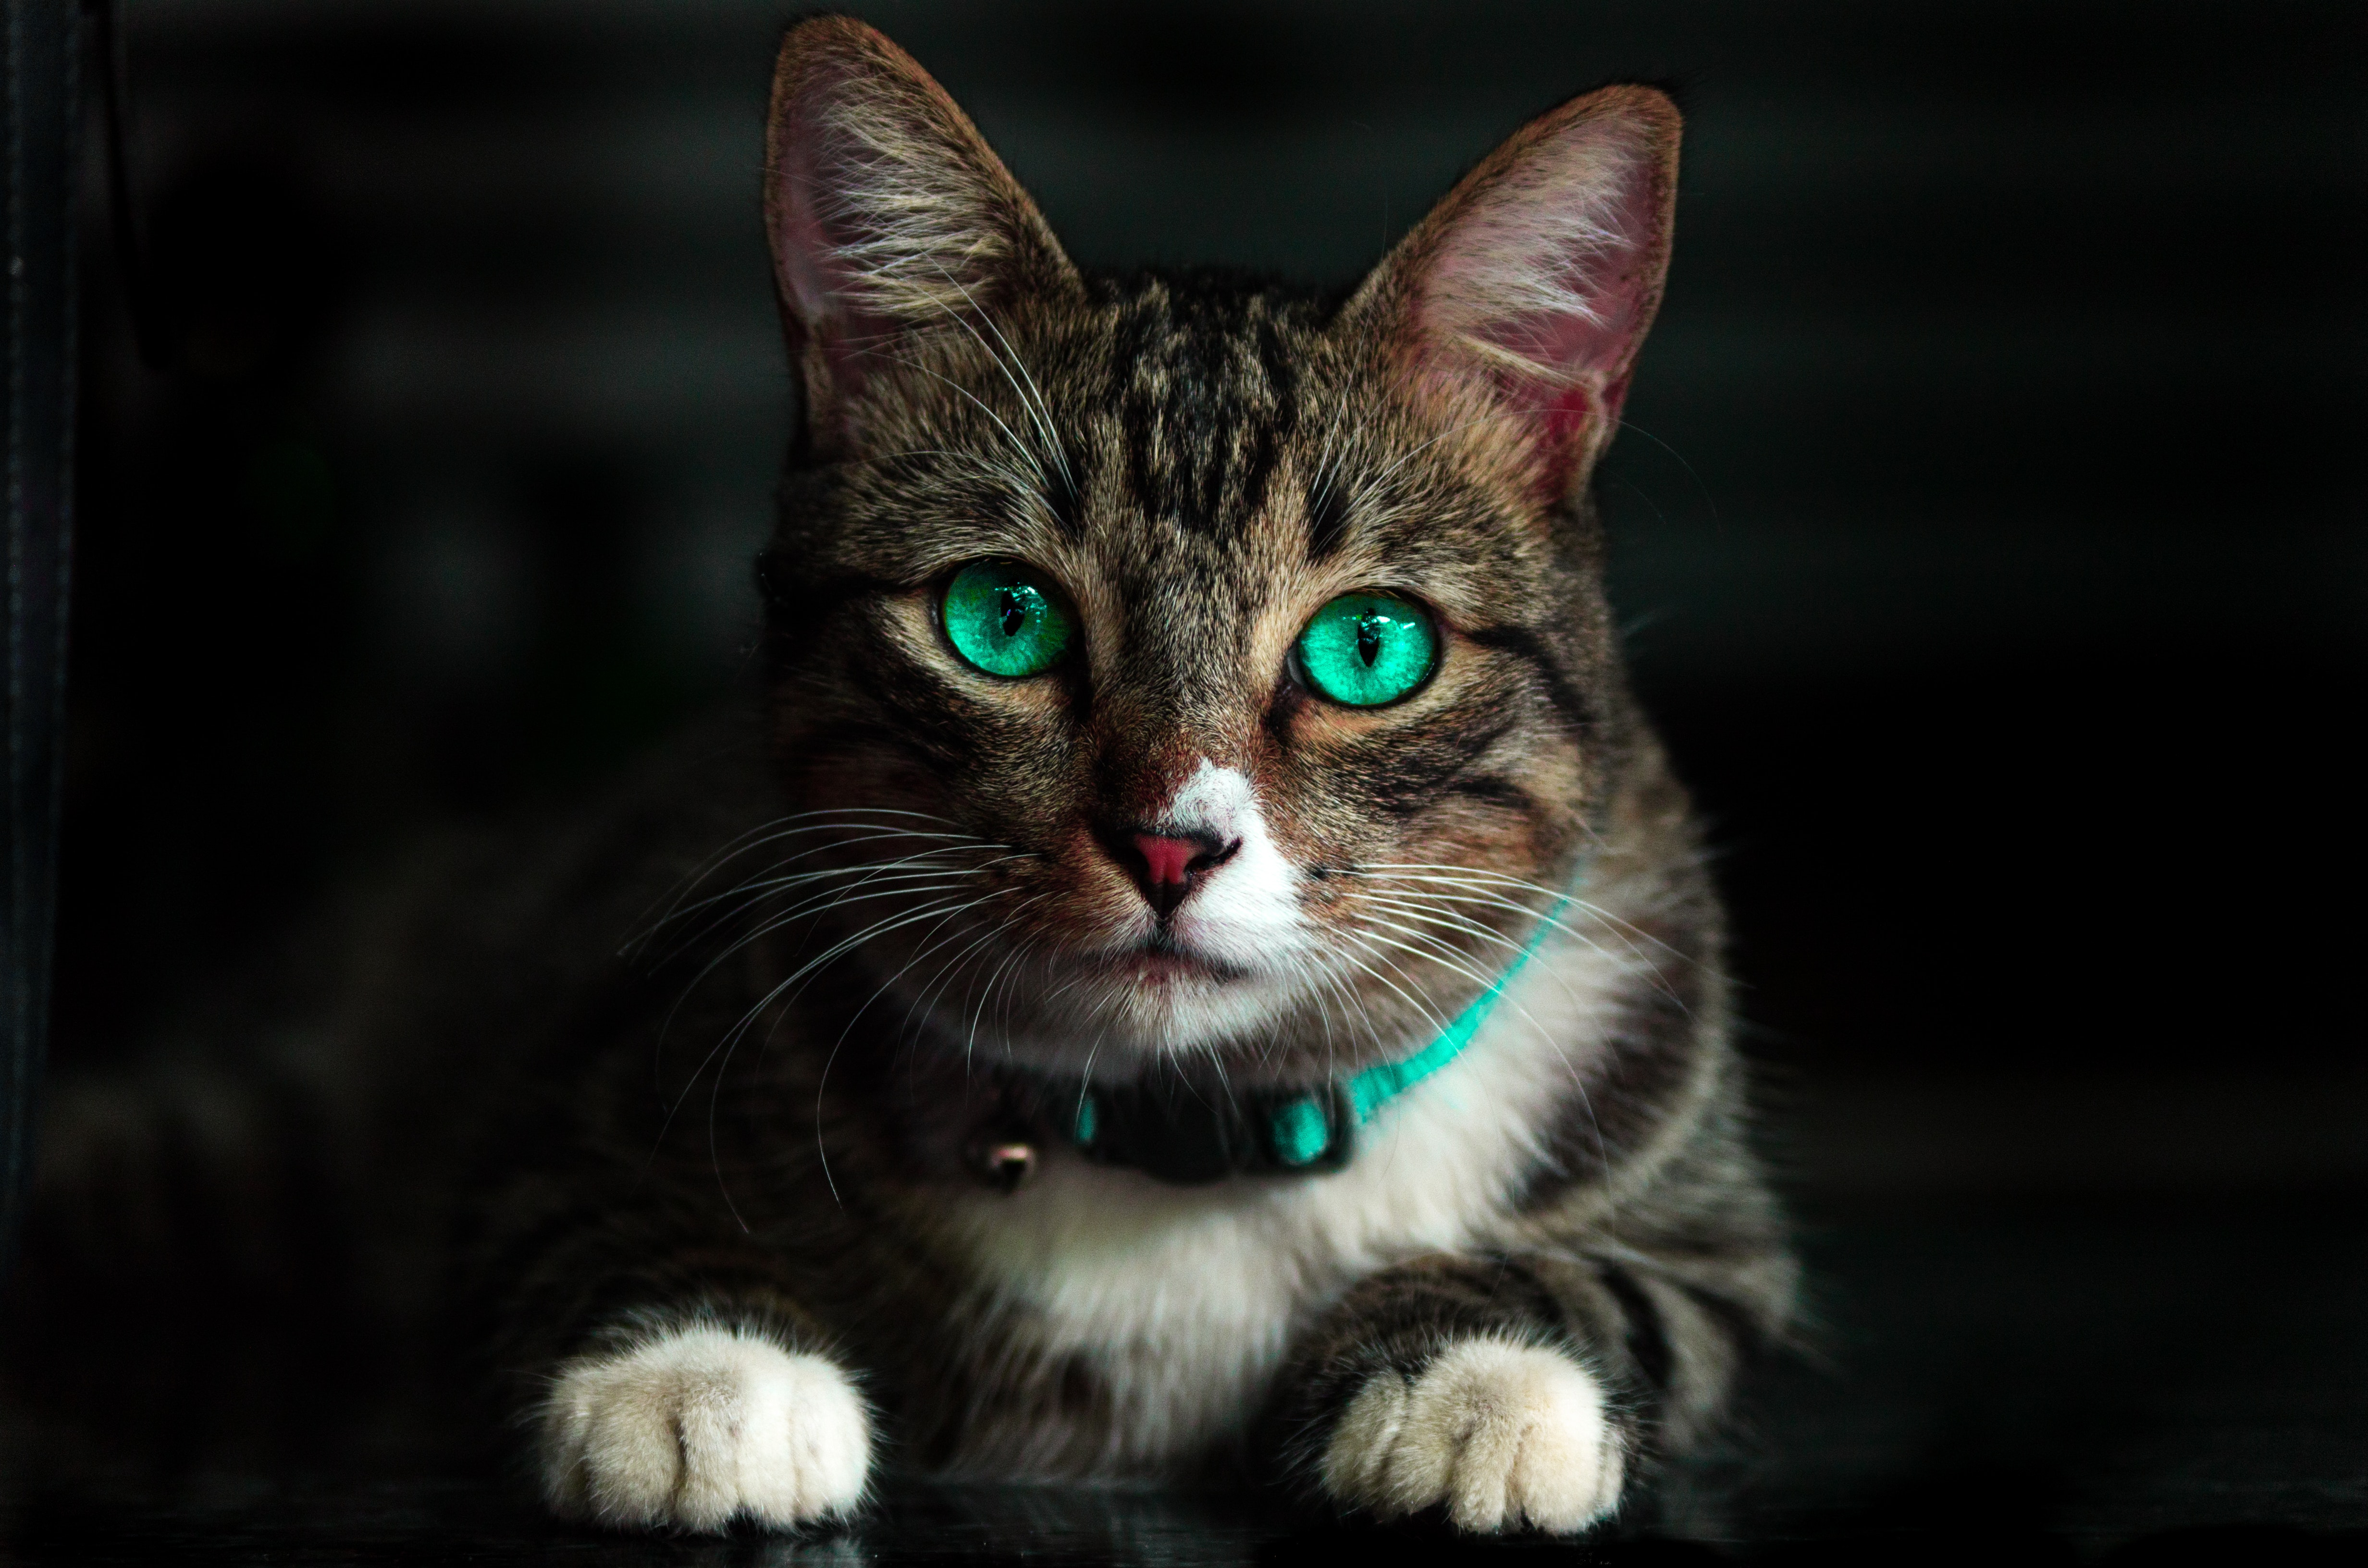 Cat with glowing green eyes and matching collar